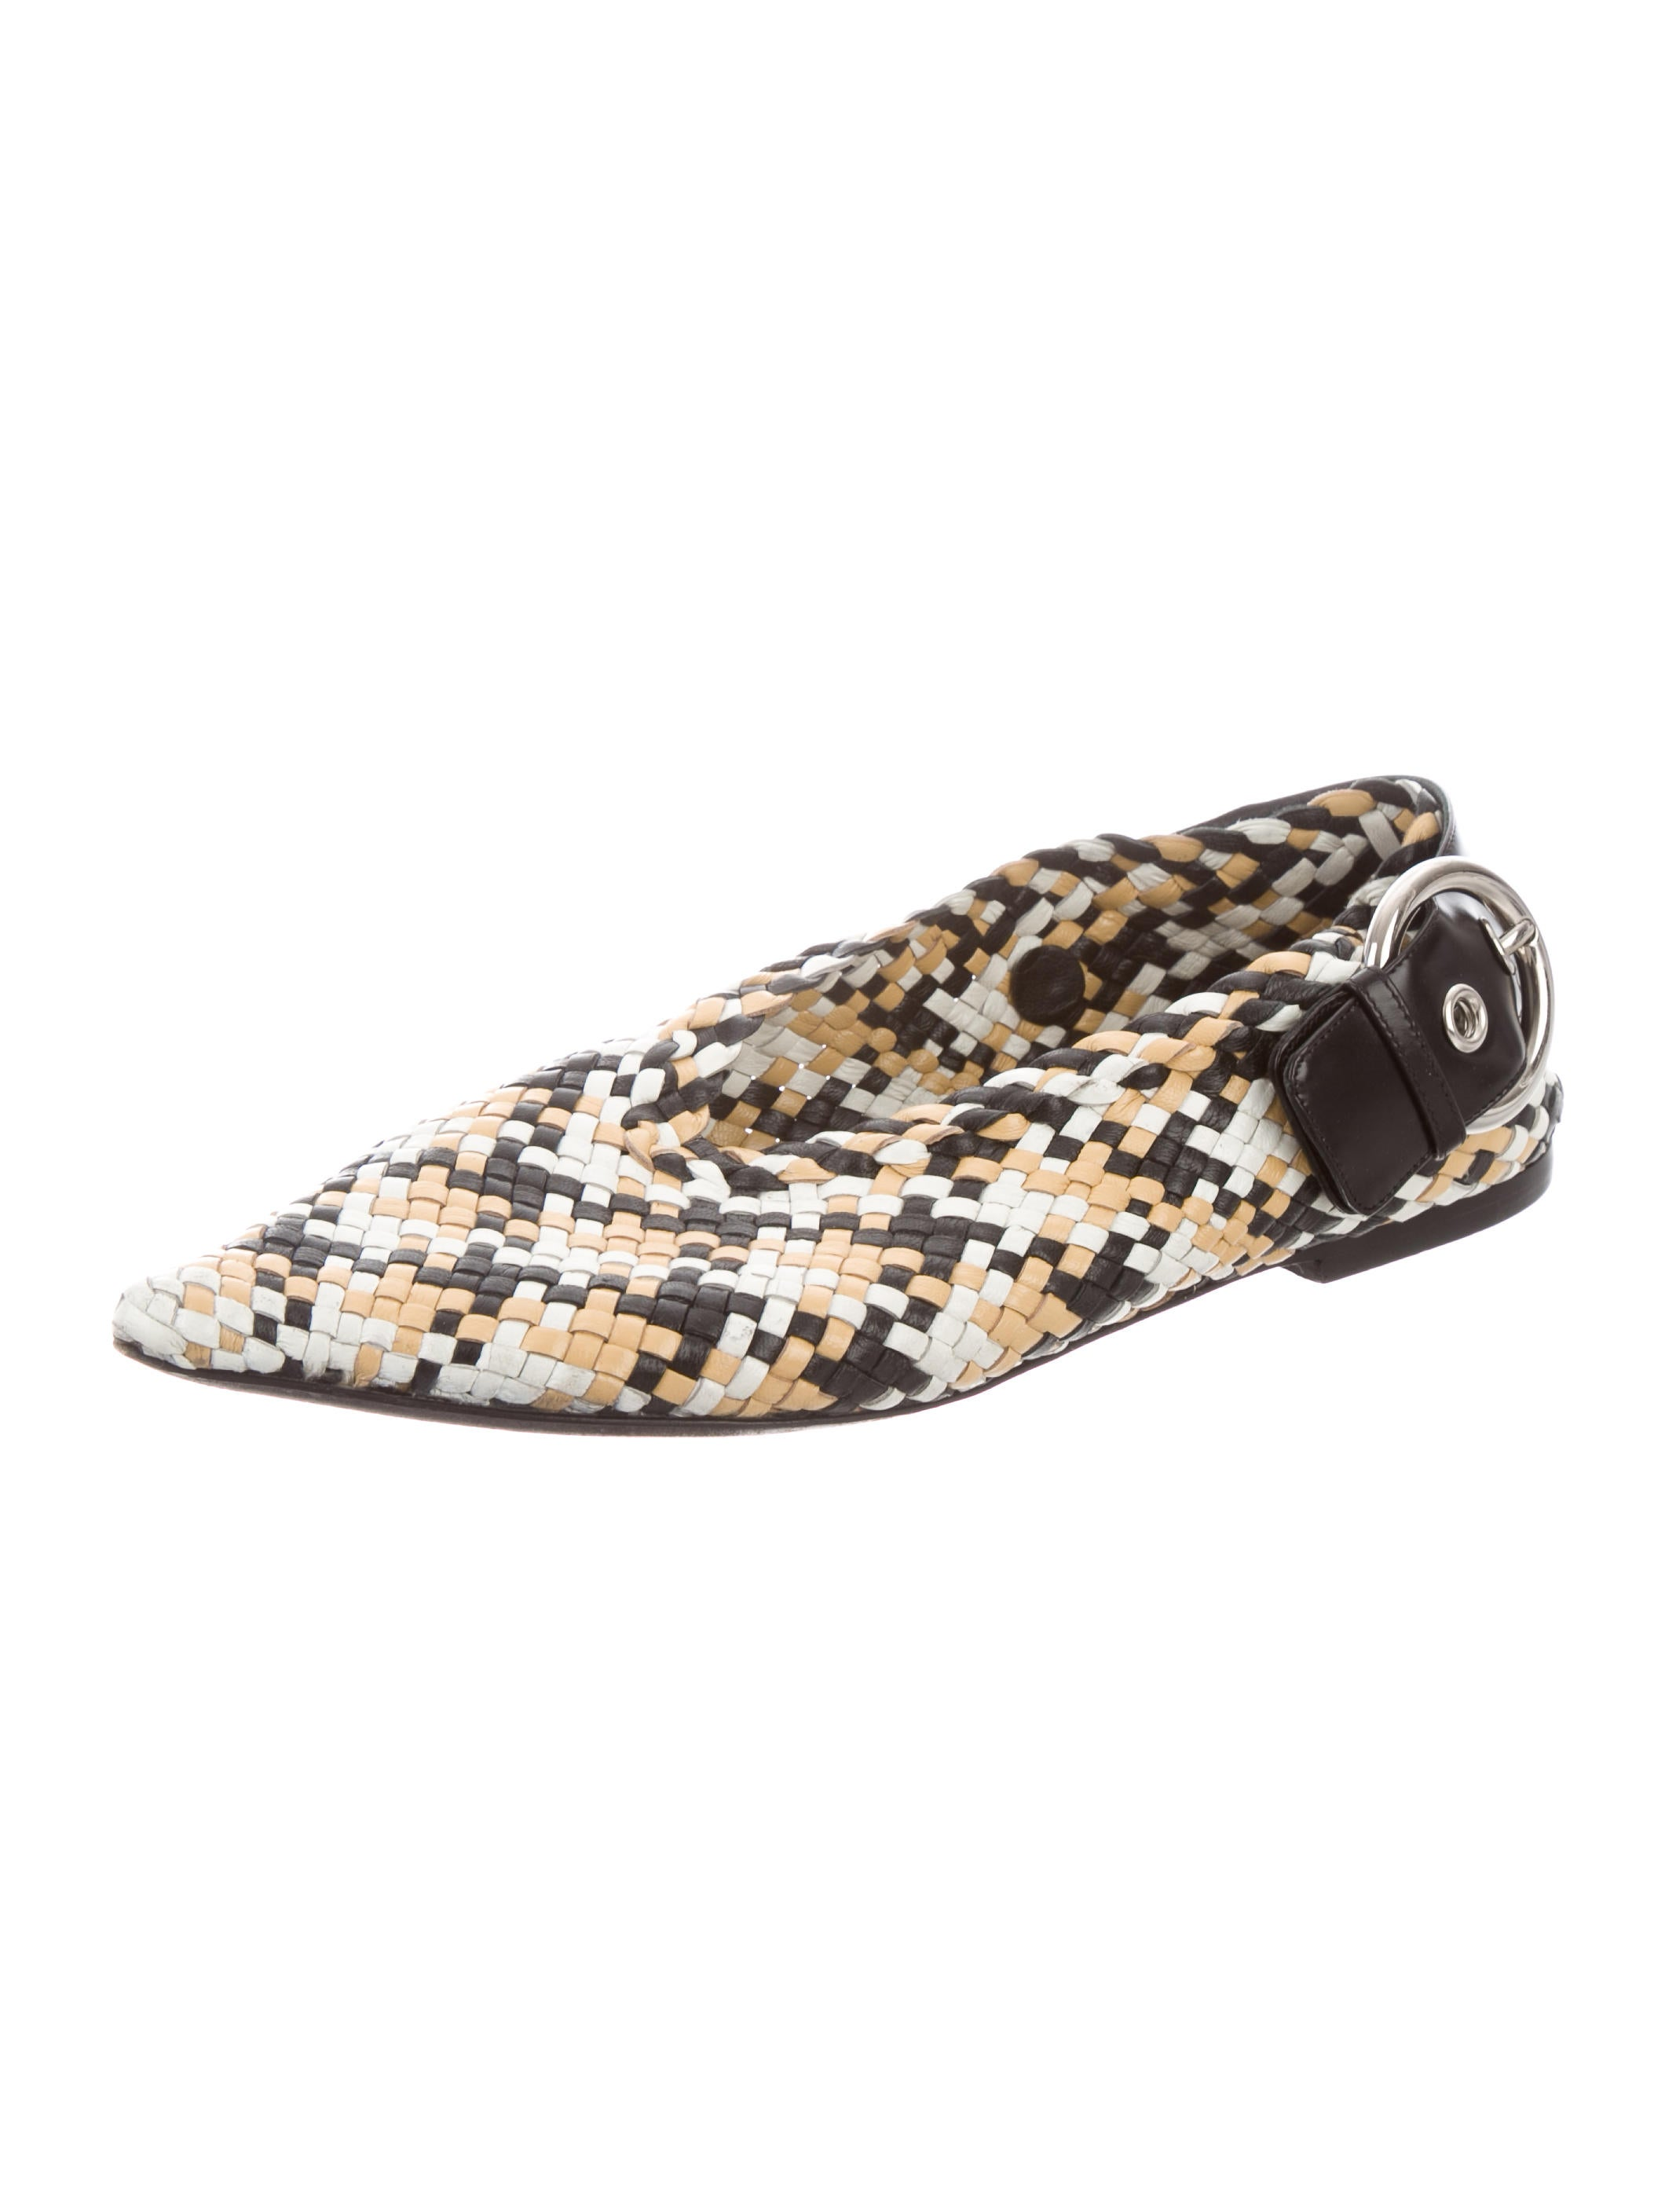 Céline Woven Buckle-Accented Flats shopping online sale online outlet in China discount visit brand new unisex cheap online ociwKTeaX